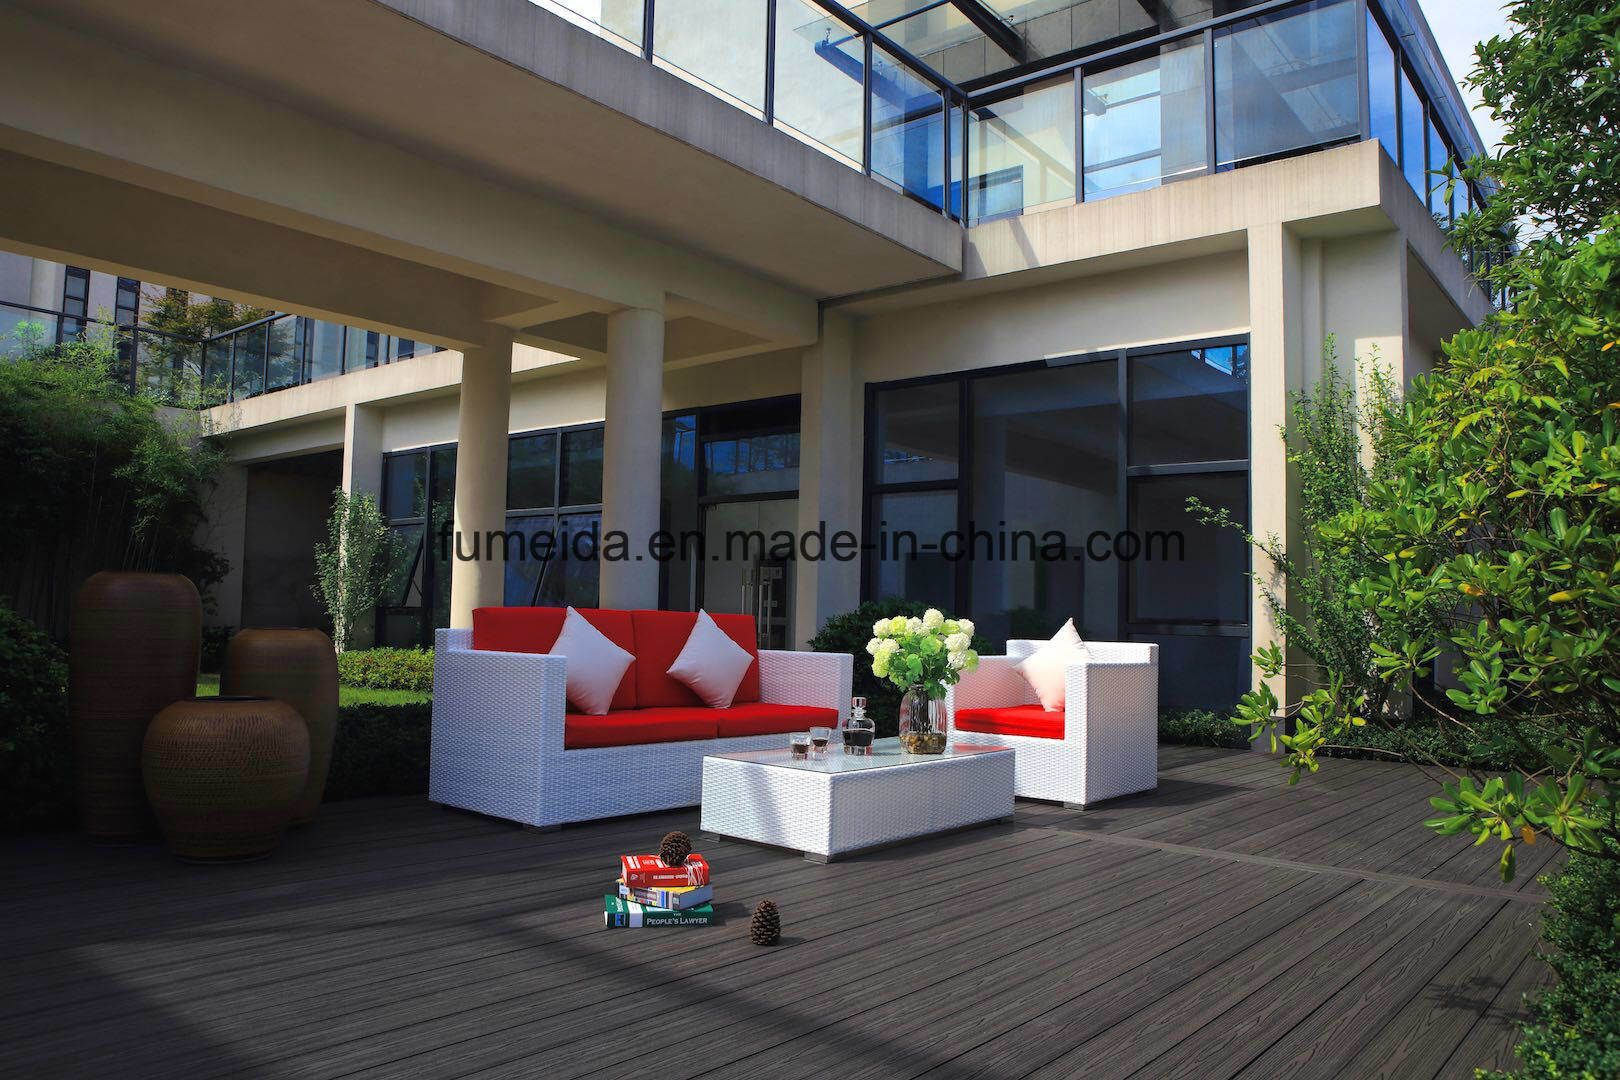 WPC Outdoor Flooring Wood Plastic Composite Decking Dek 001 pictures & photos